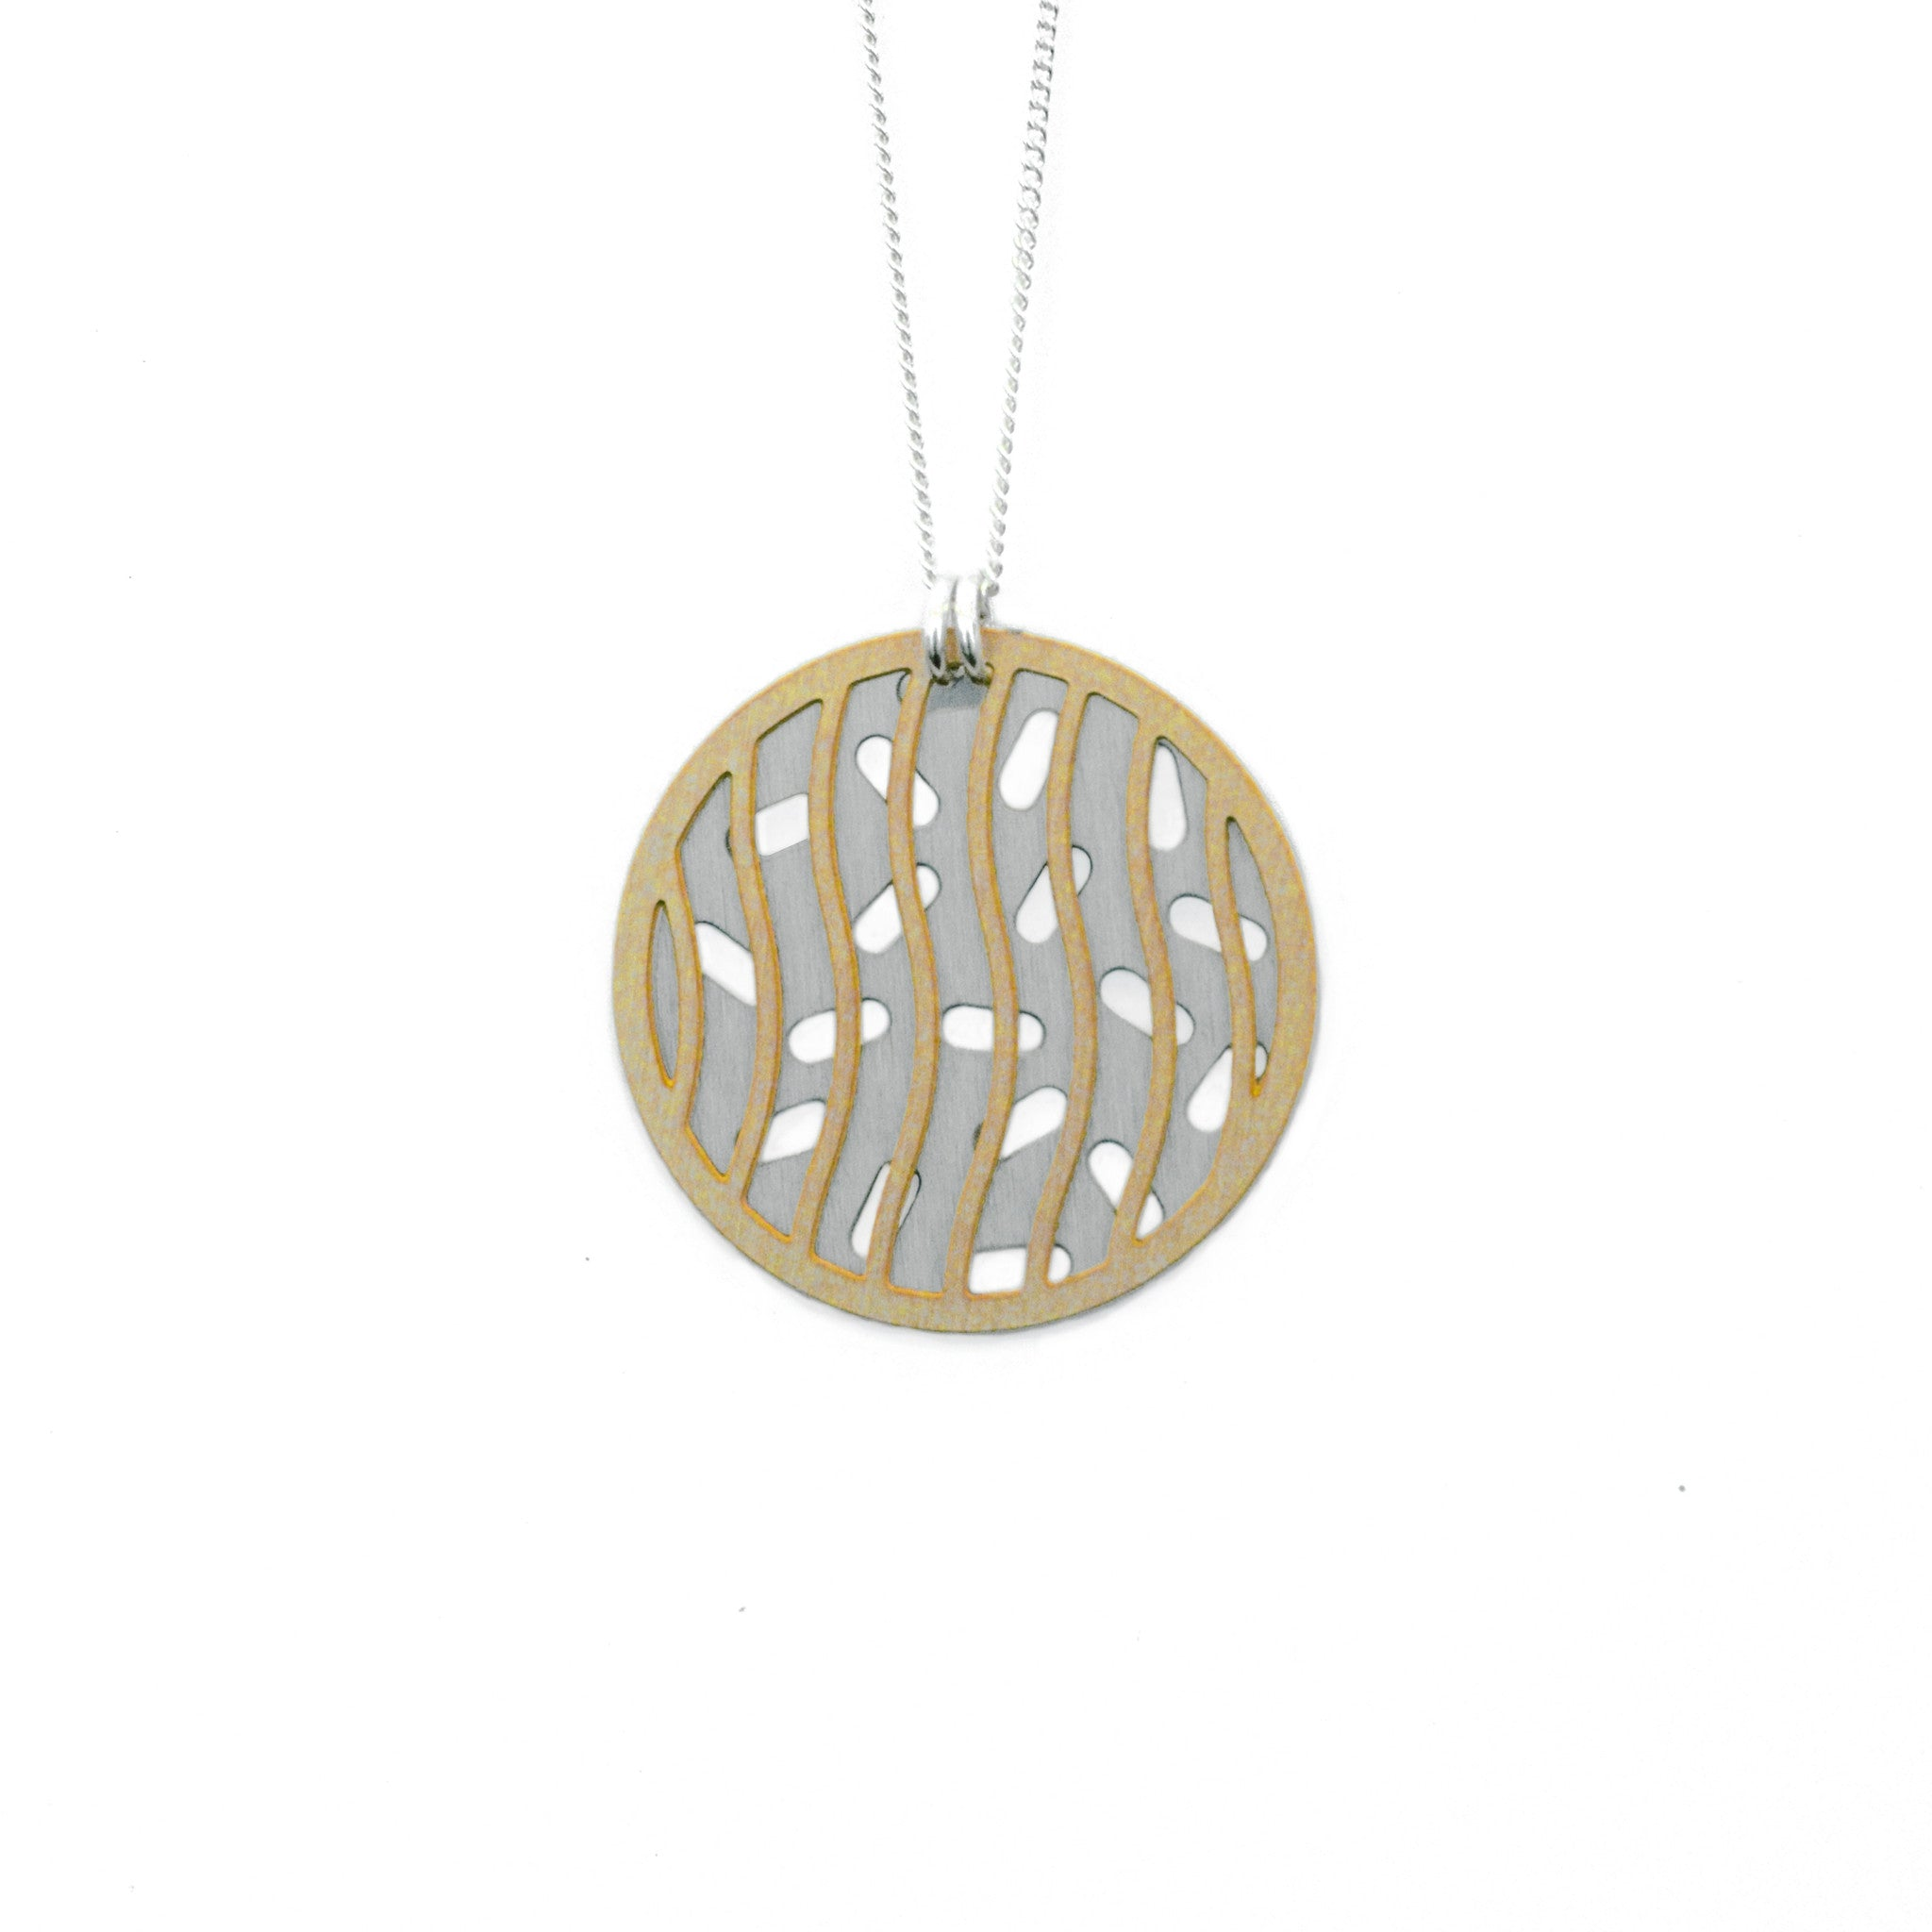 Layered disc necklace on white